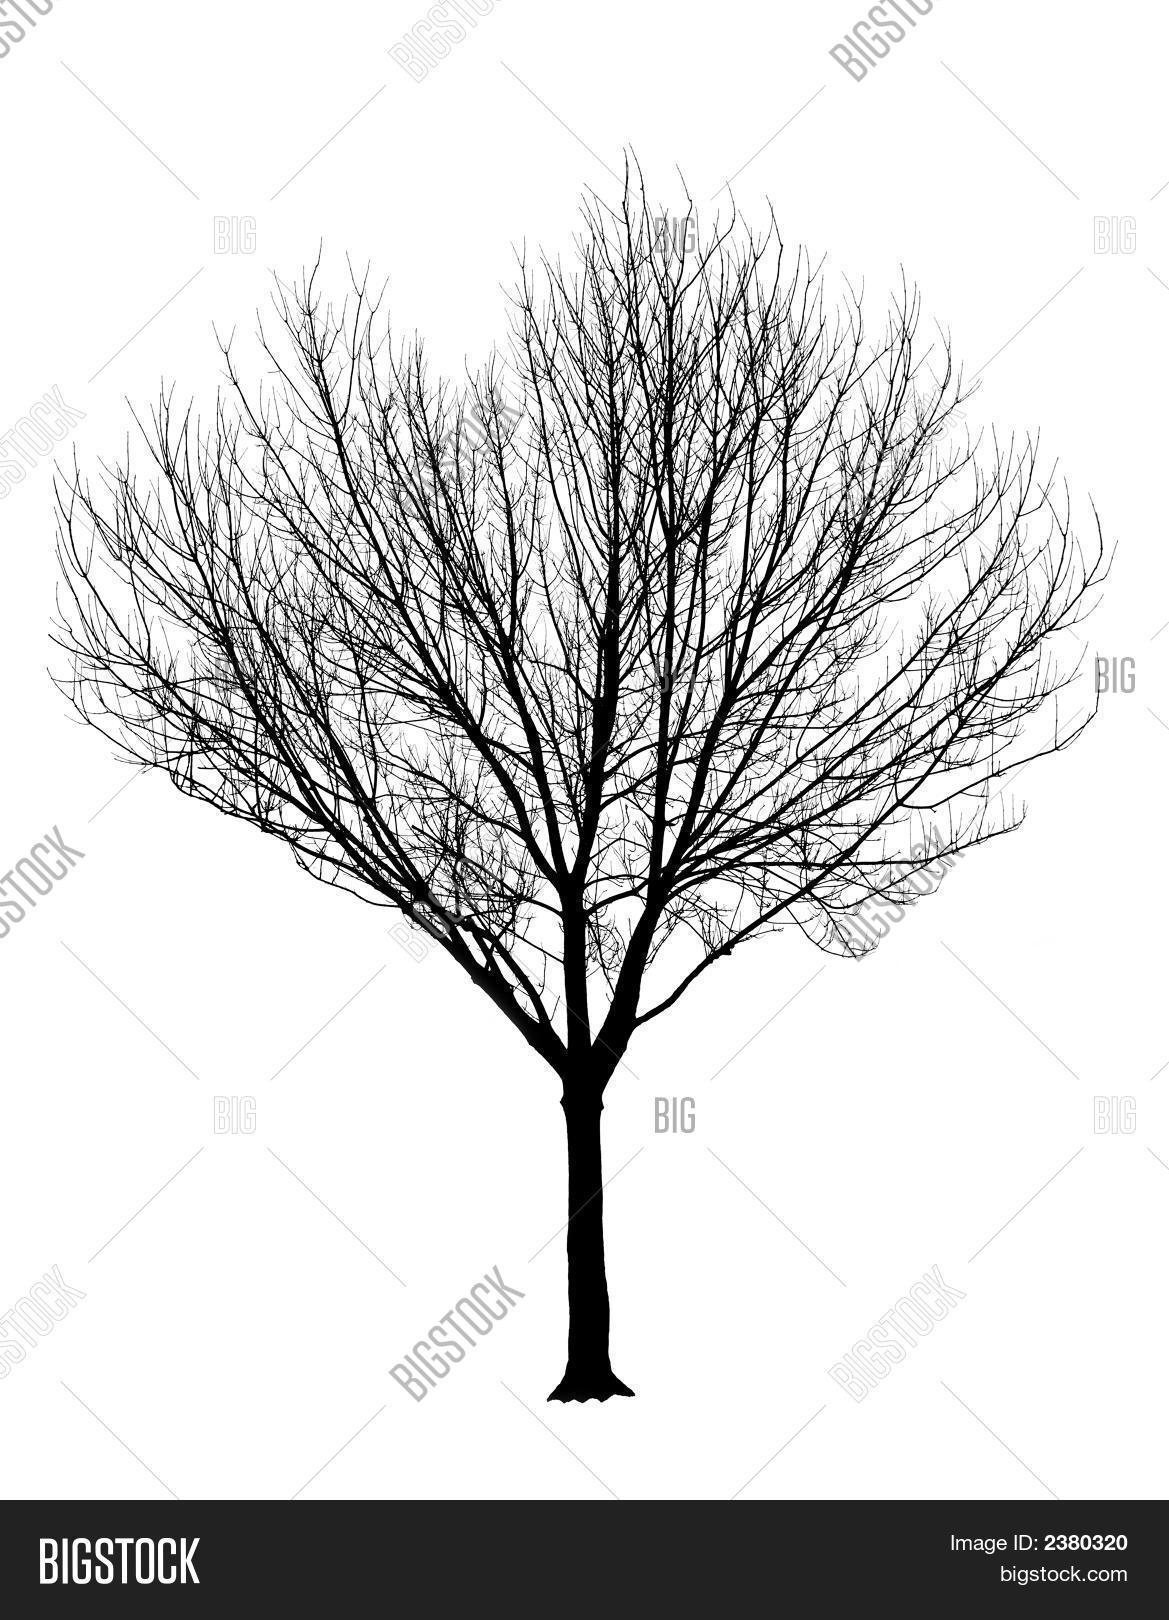 Bare Tree Silhouette Image Amp Photo Free Trial